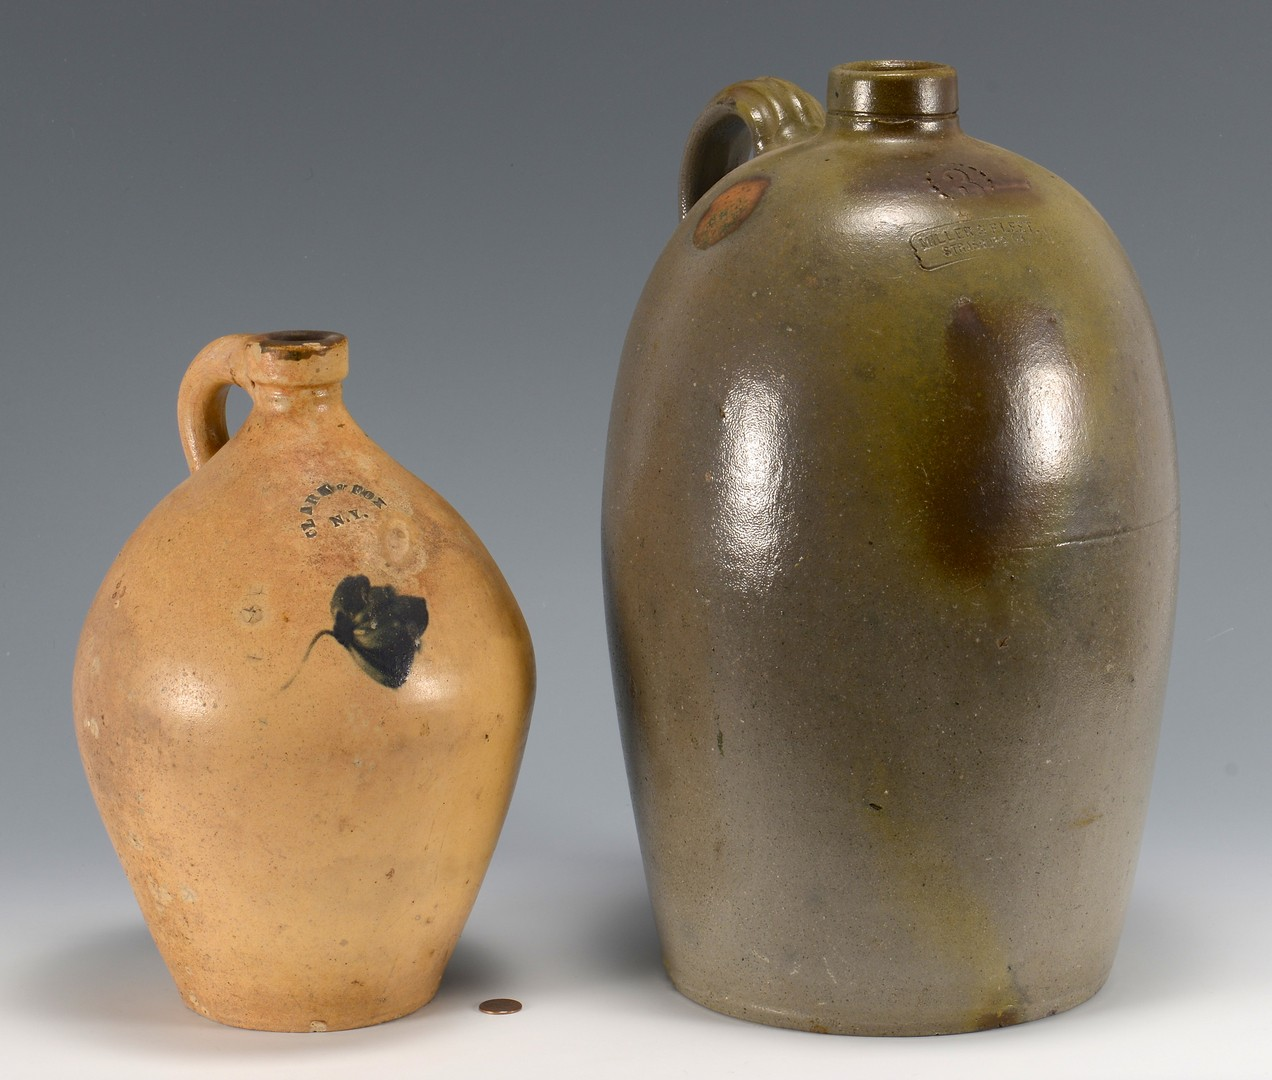 Lot 474: 2 Stoneware Pottery Jugs, 1 Southern